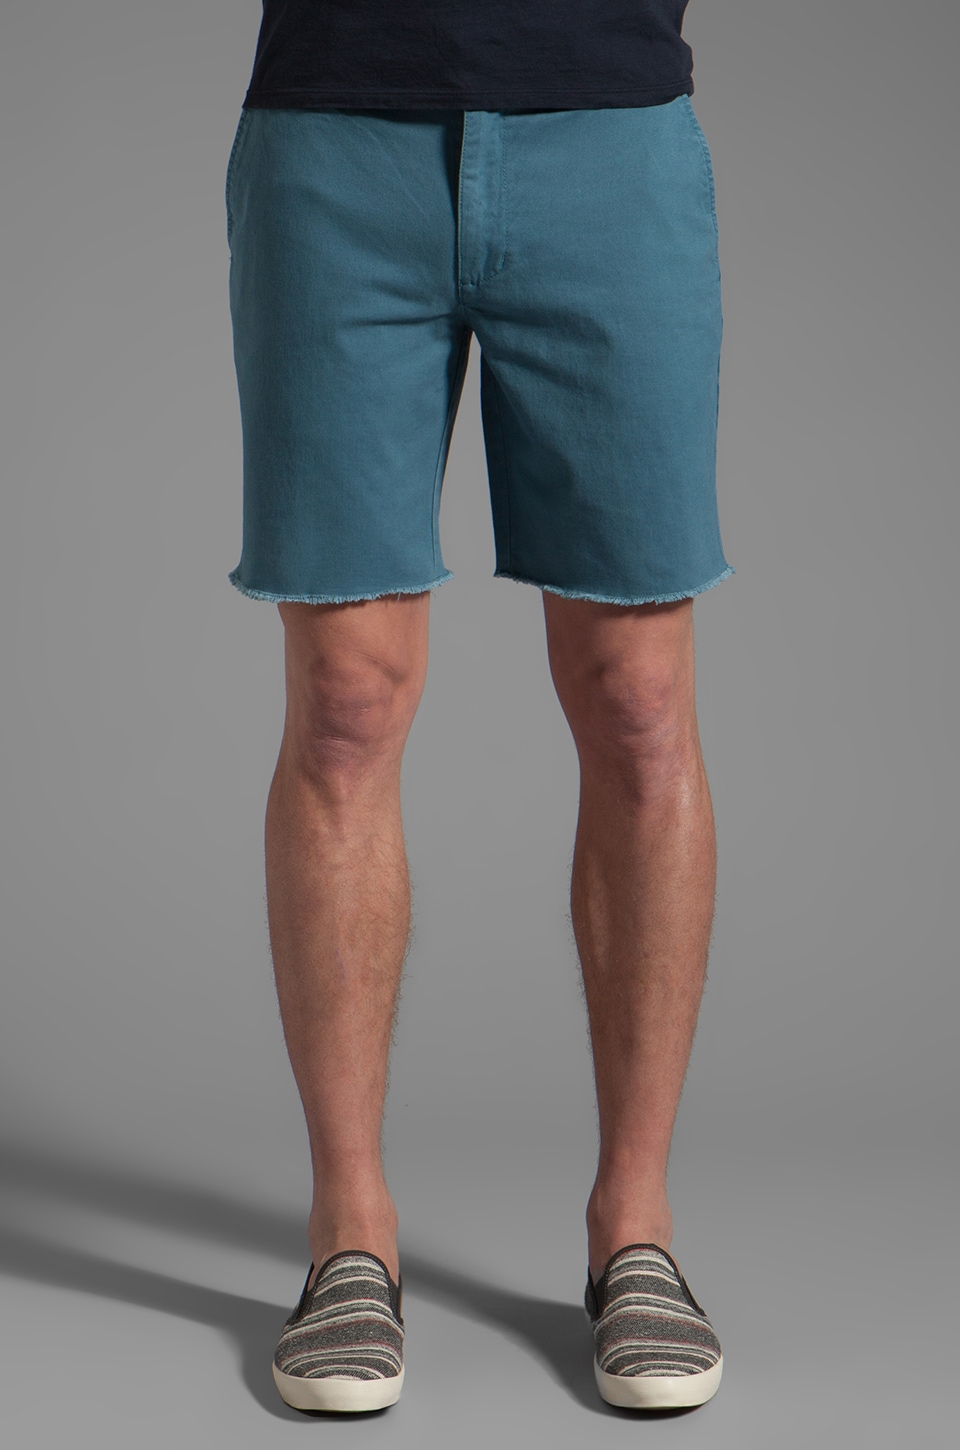 RVCA All Time Cut Off Short in in Aegean Blue